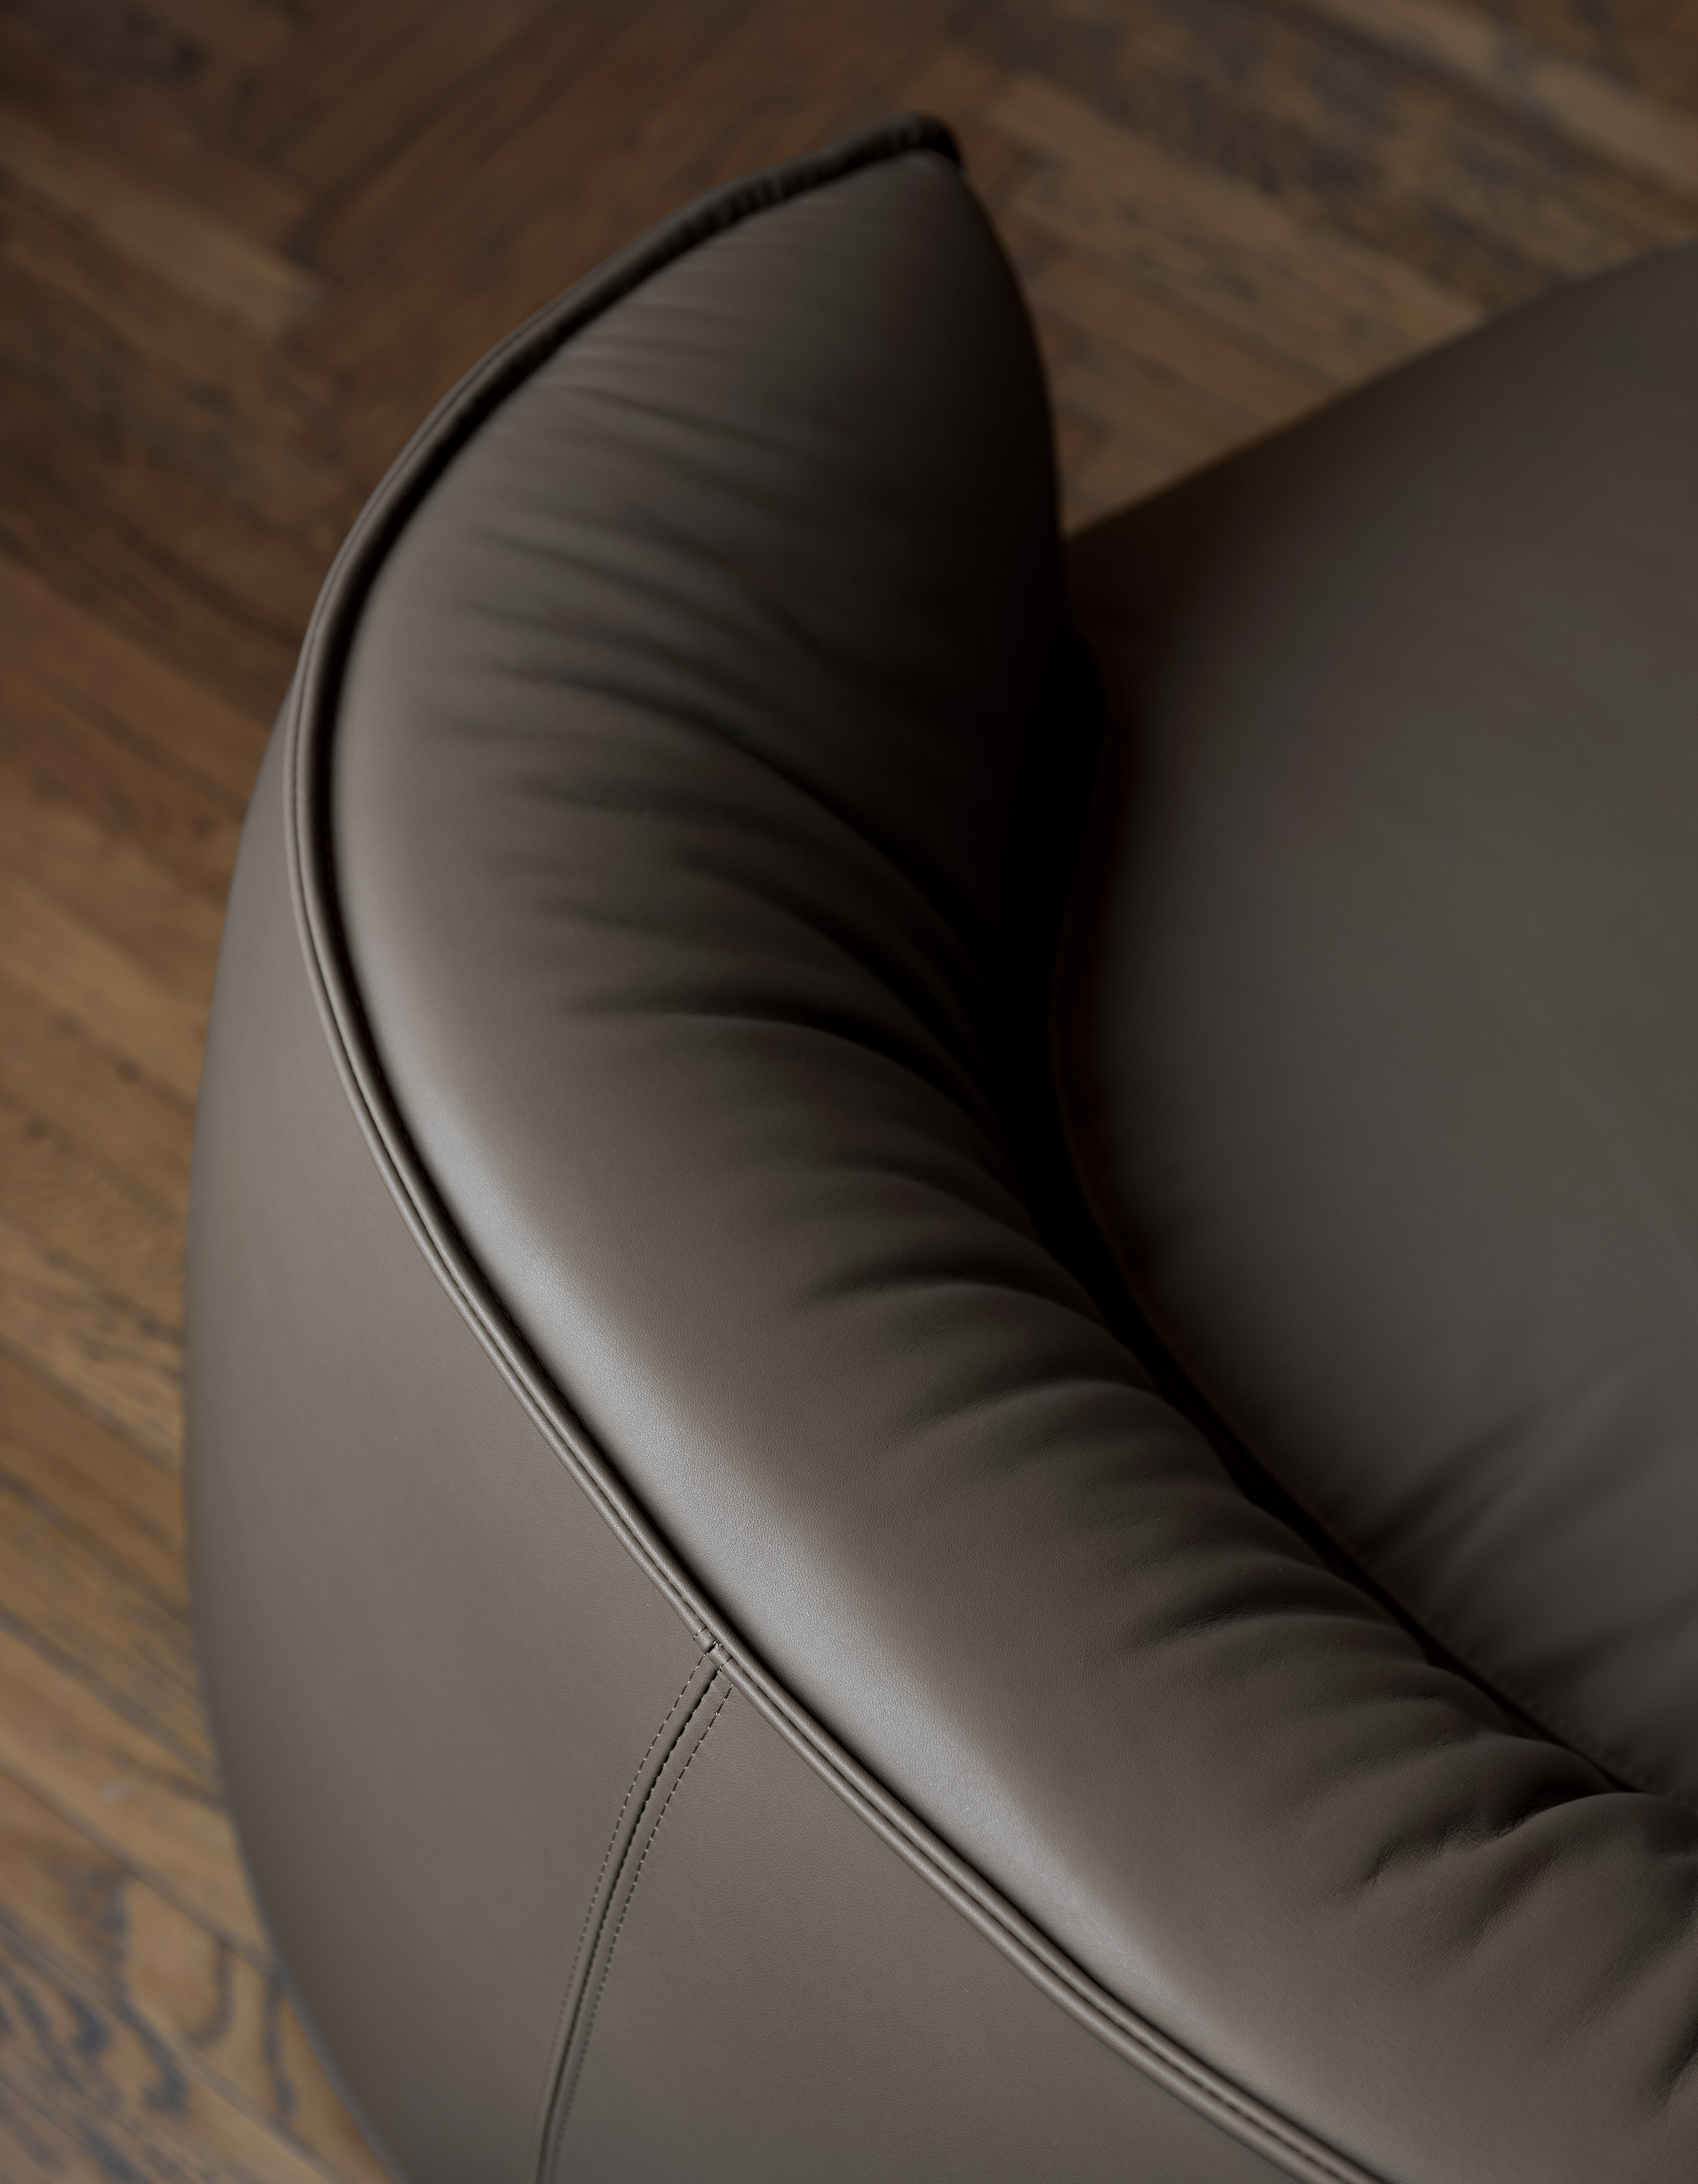 Brioni Small Lounge Chair - Brioni is a collection of poufs, lounge armchairs and daybeds named after a famous archipelago in the Adriatic Sea. They resemble small islands rising out of the sea. Their design features a dark band on the lower part that prevents direct contact between the ground and the upholstery. The upholstery is made of Sunbrella fabric: stain-resistant, breathable, resistant to UV rays and water-repellent. They are soft and comfortable thanks to flexible polyester padding and plastic slats, enclosed in water-resistant housing. Light and easy to move, they can be used to create countless compositions outdoors, experimenting with different shapes, colours and sizes. <p>A range of materials are available in a number of combinations. Prices may vary. Please enquire for full details. | Matter of Stuff